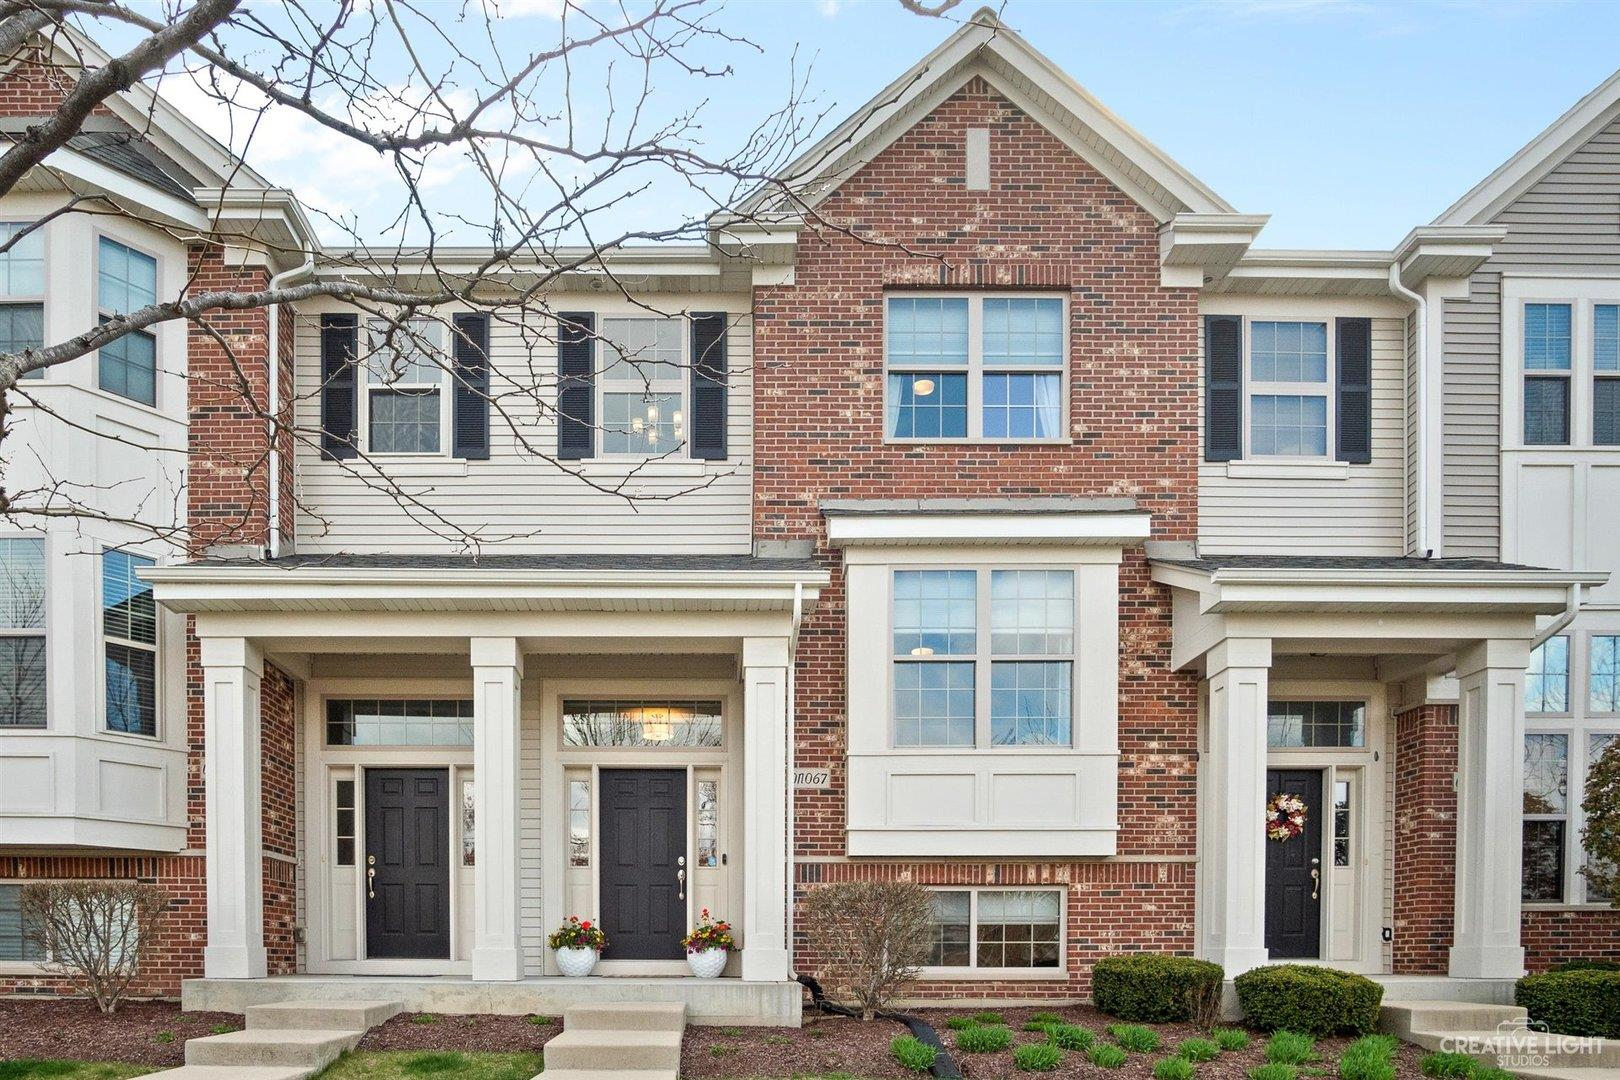 0N067 Forsythe Court, Winfield, IL 60190 - #: 11056369